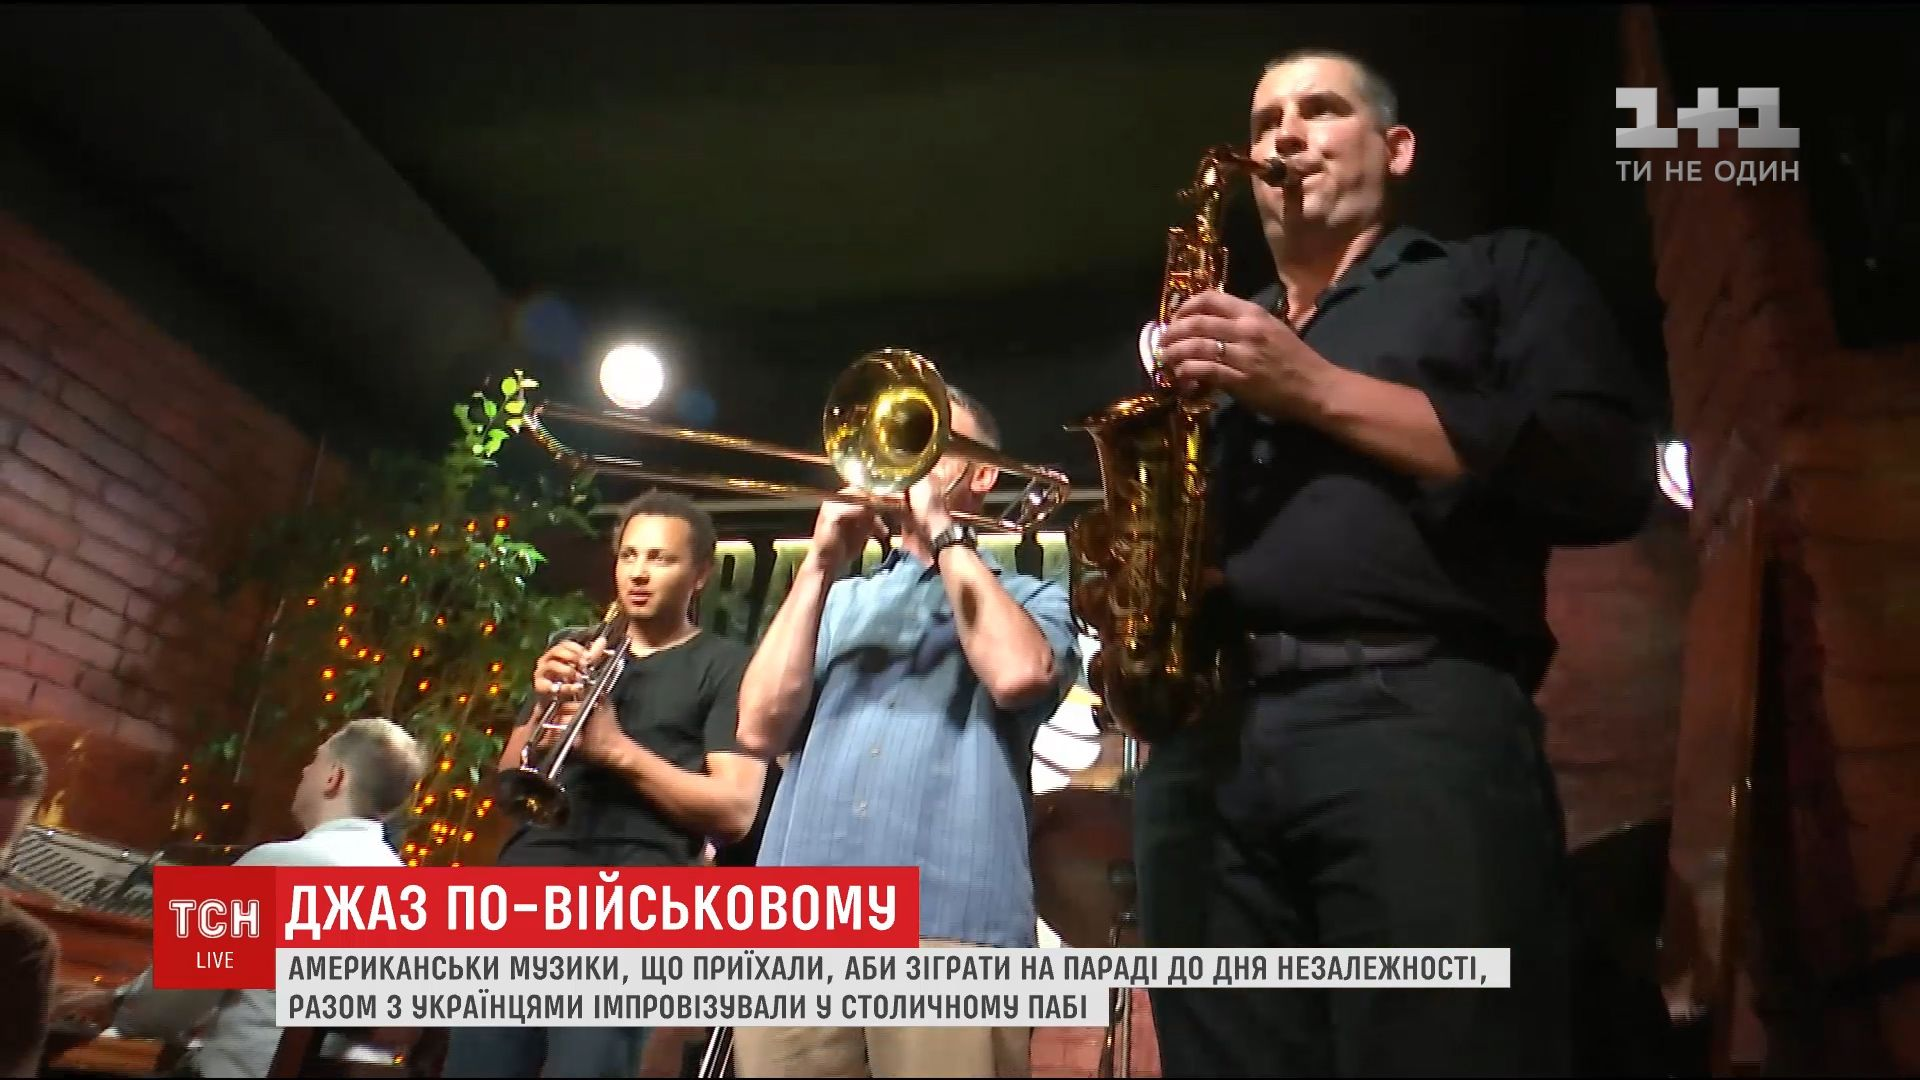 U.S. military band musicians perform in Kyiv pub